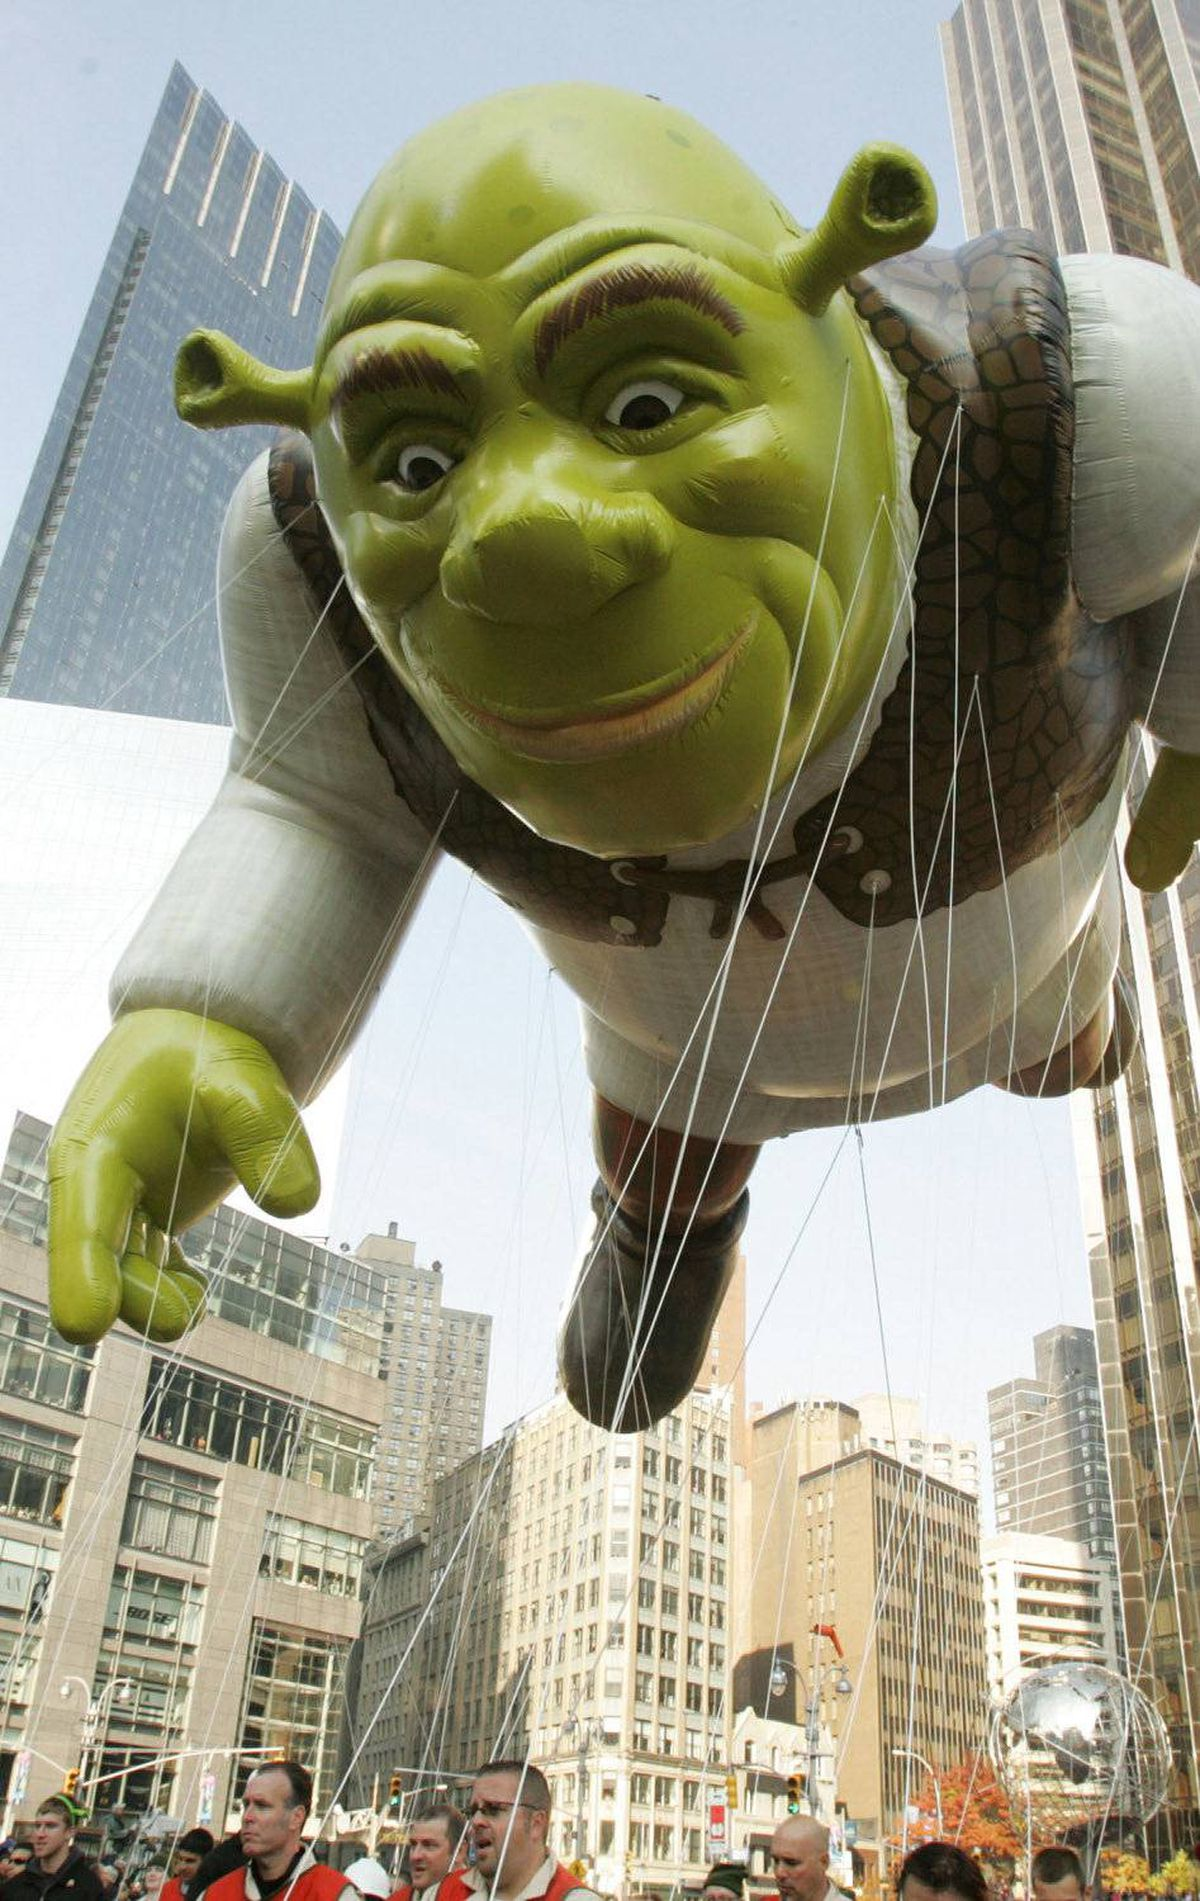 A Shrek balloon floats in New York, no doubt giving nightmares to young children below it.